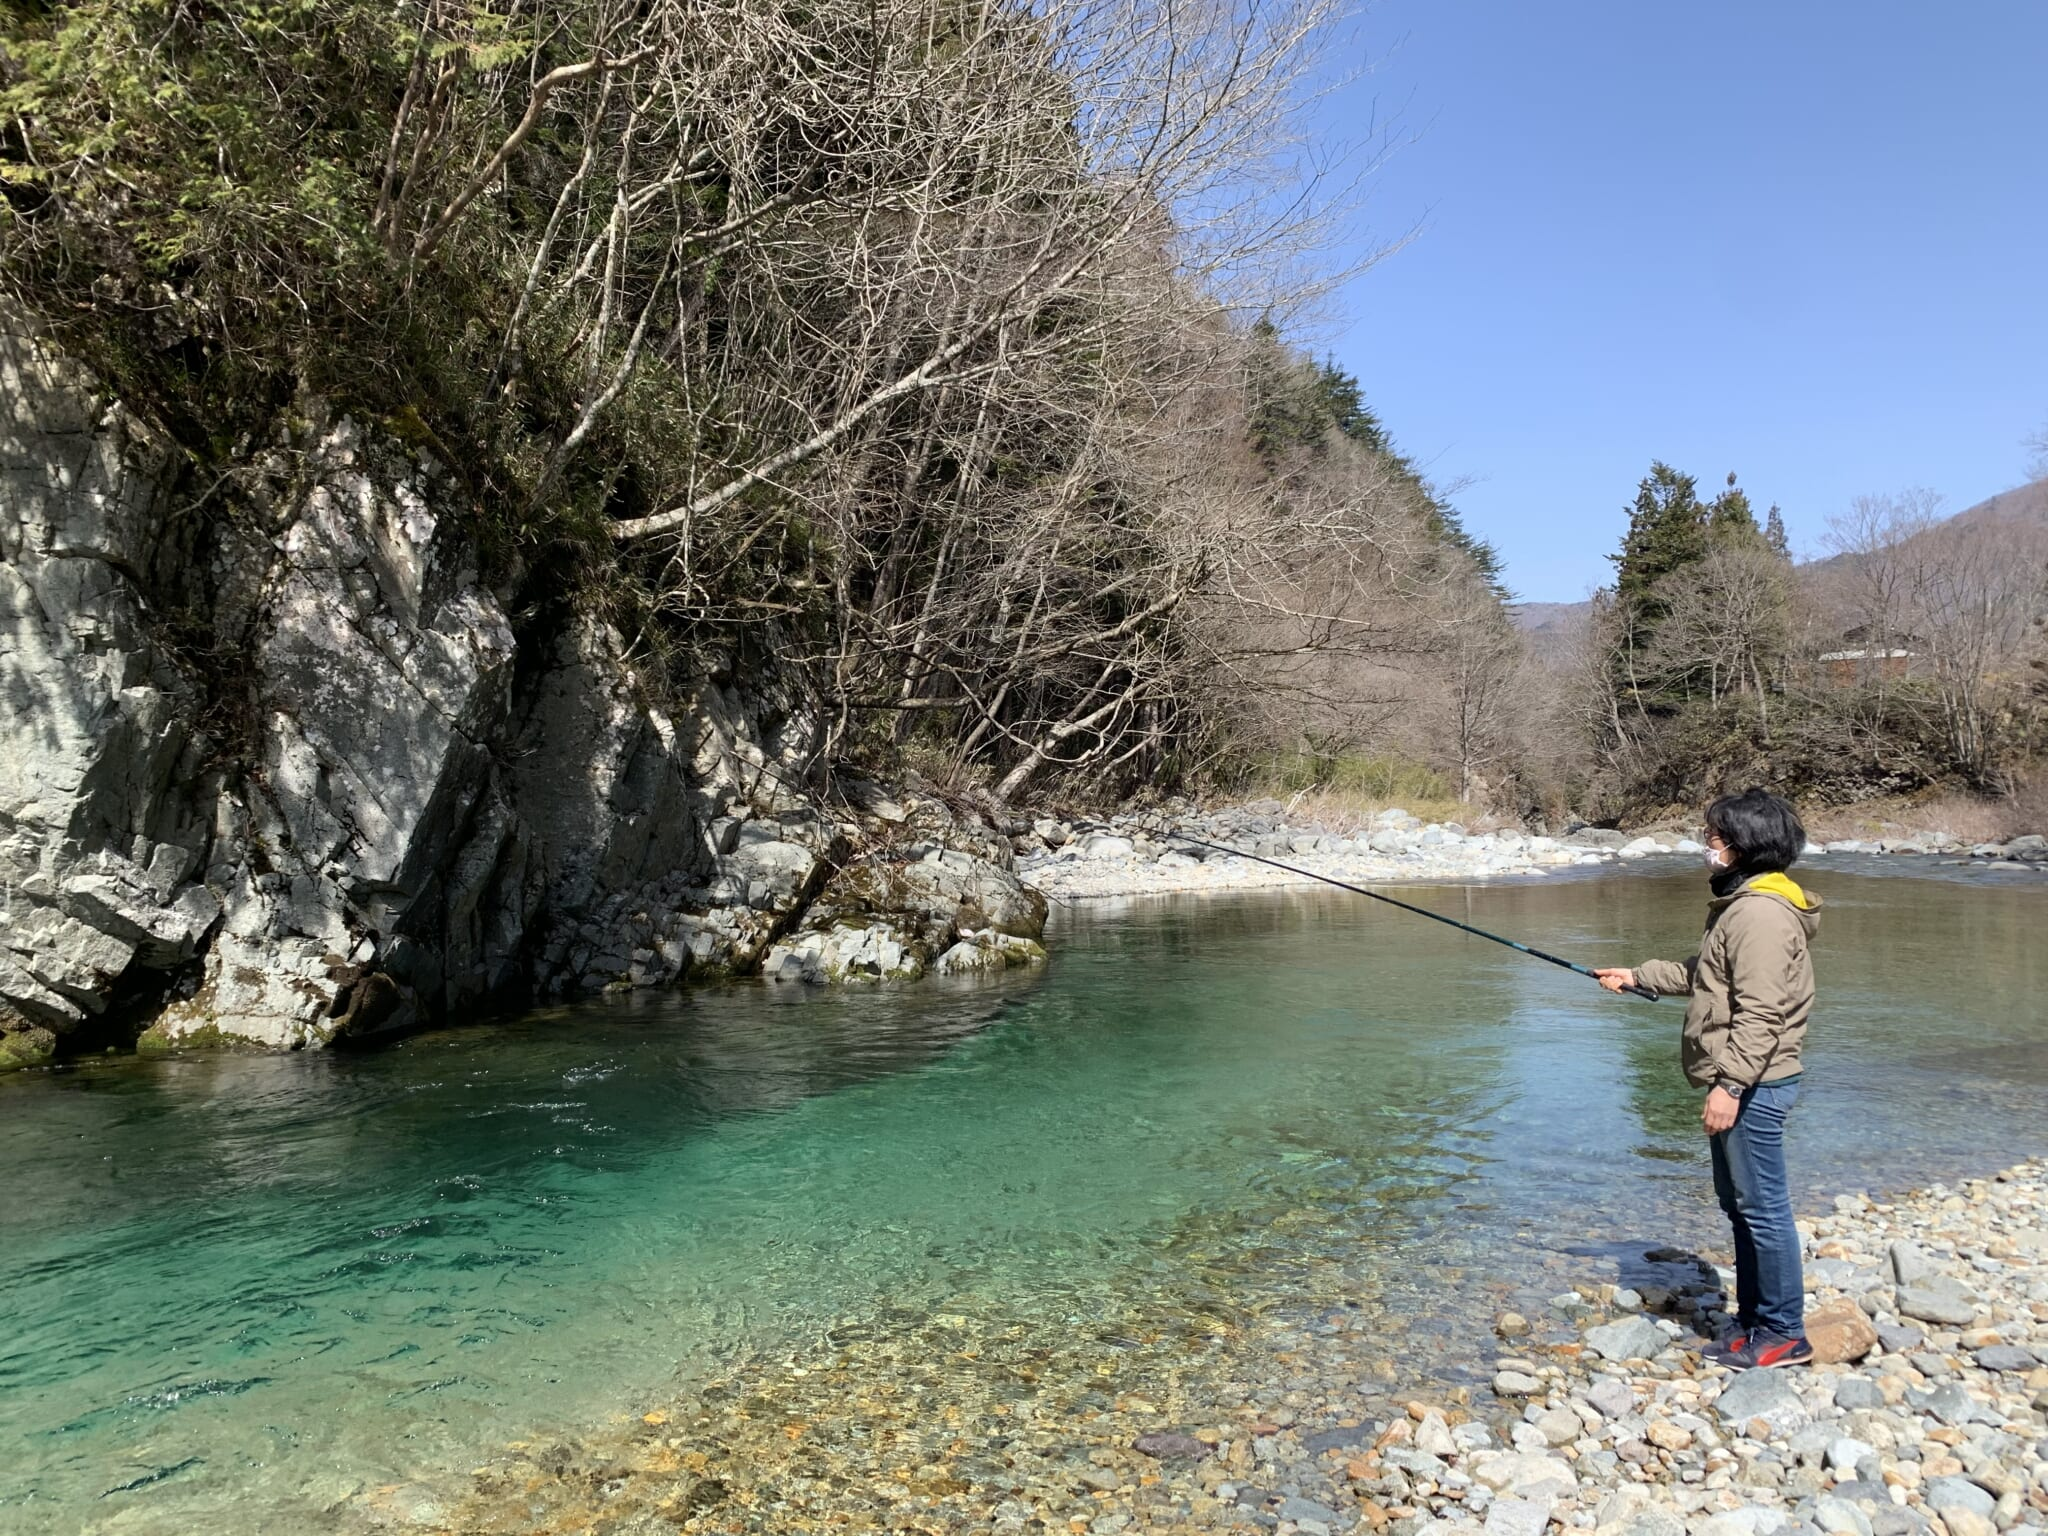 person line fishing in a river in Japan